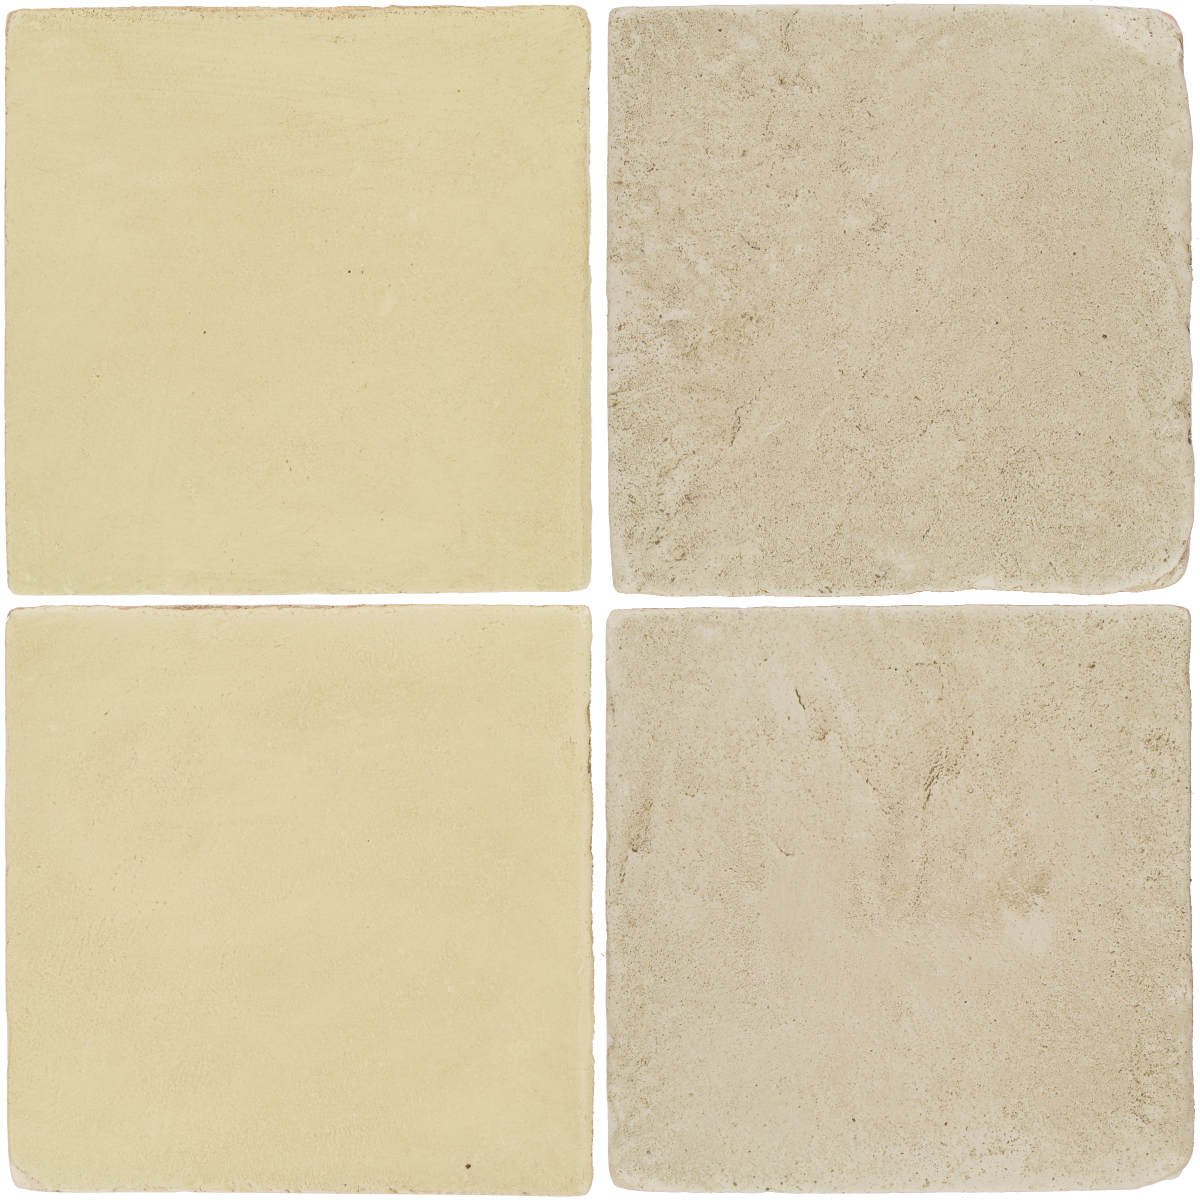 Pedralbes Antique Terracotta  2 Color Combinations  OHS-PGPW Pergamino White + VTG-PGLW Glacier White